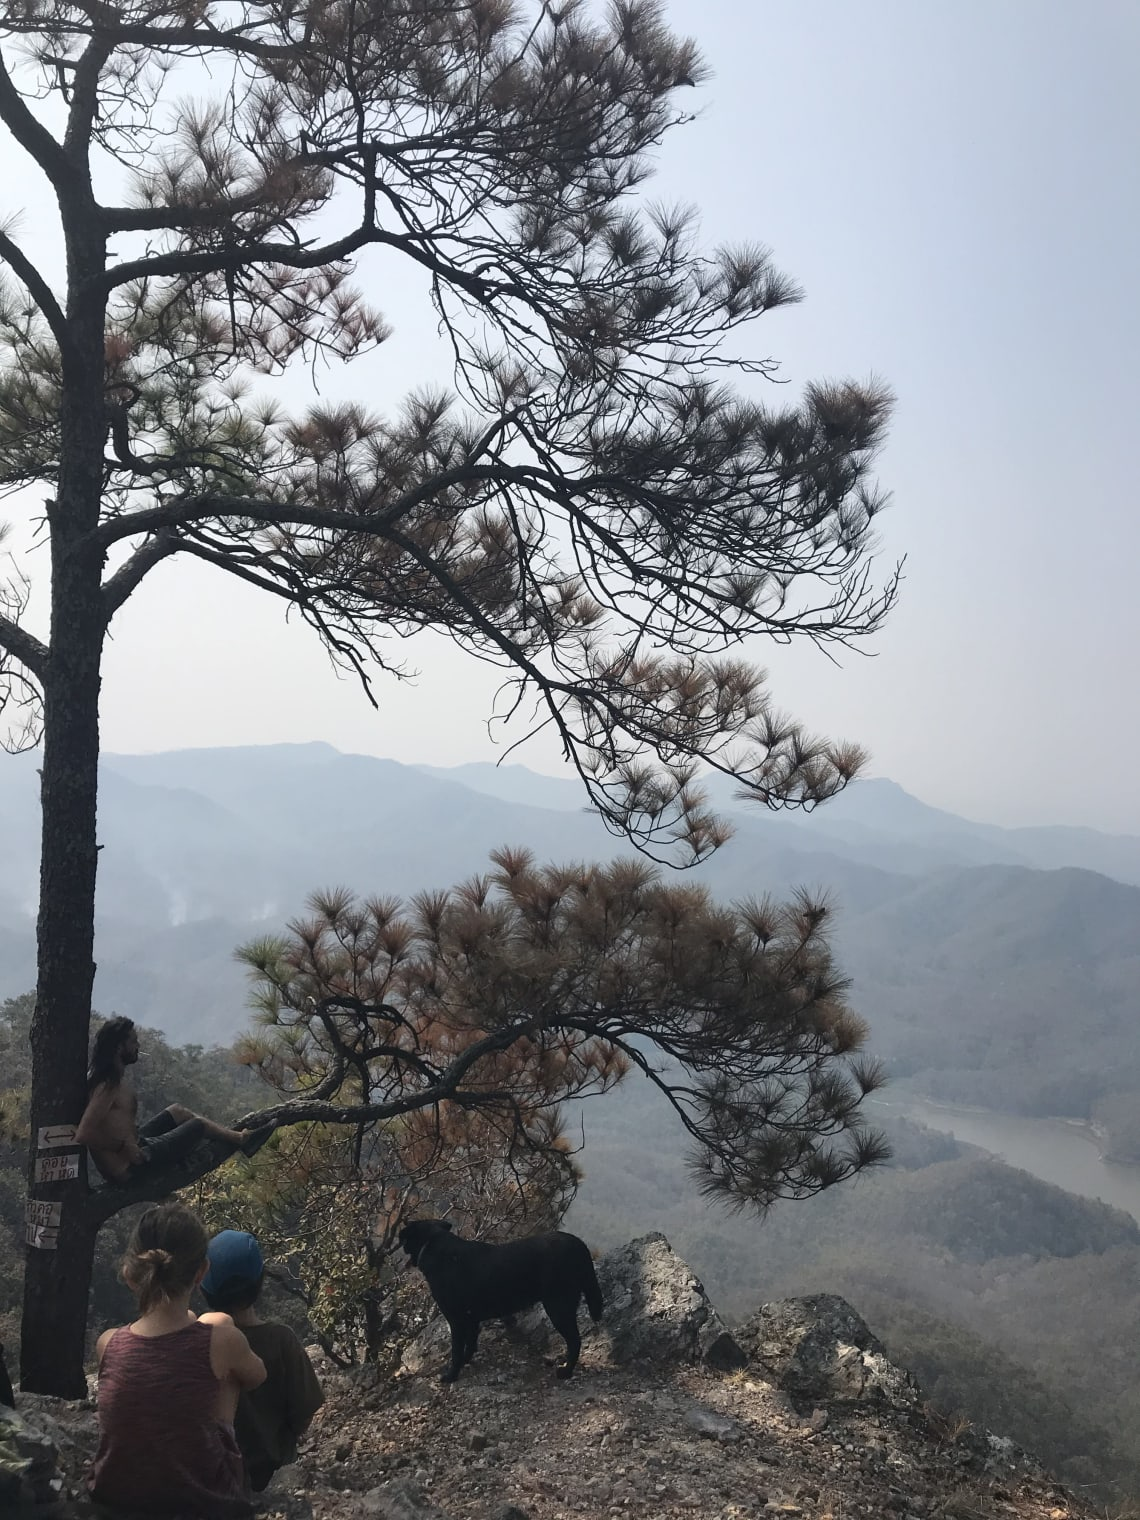 Hiking in Chiang Mai, Thailand